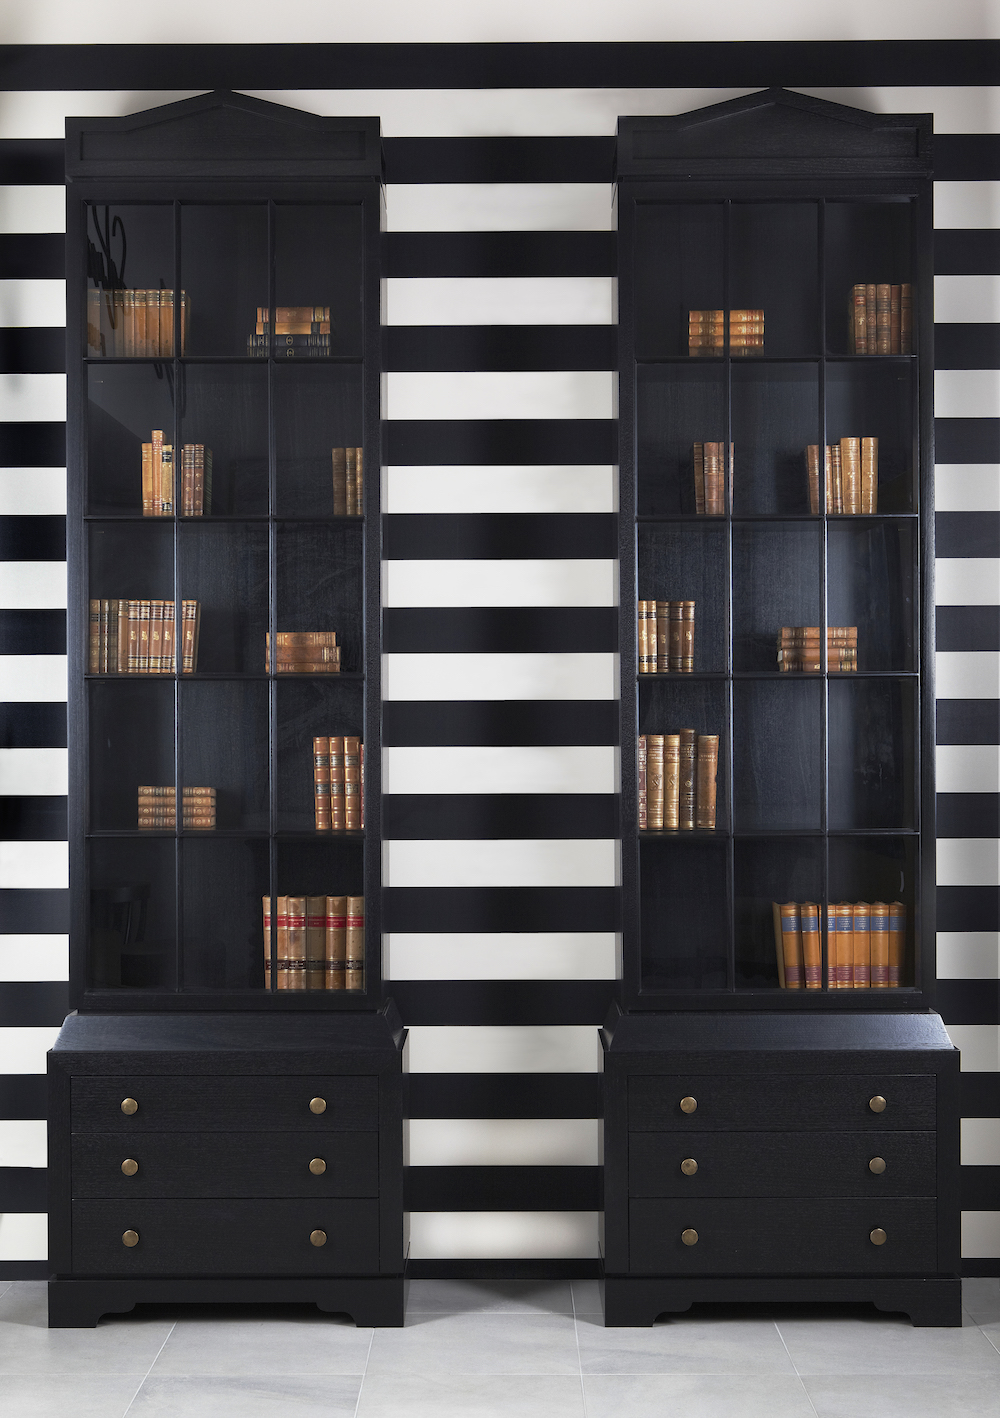 Tall Prestige Oxford Black Classic Style Bookcases With Glass Window Doors With Drawers James Salmond Furniture